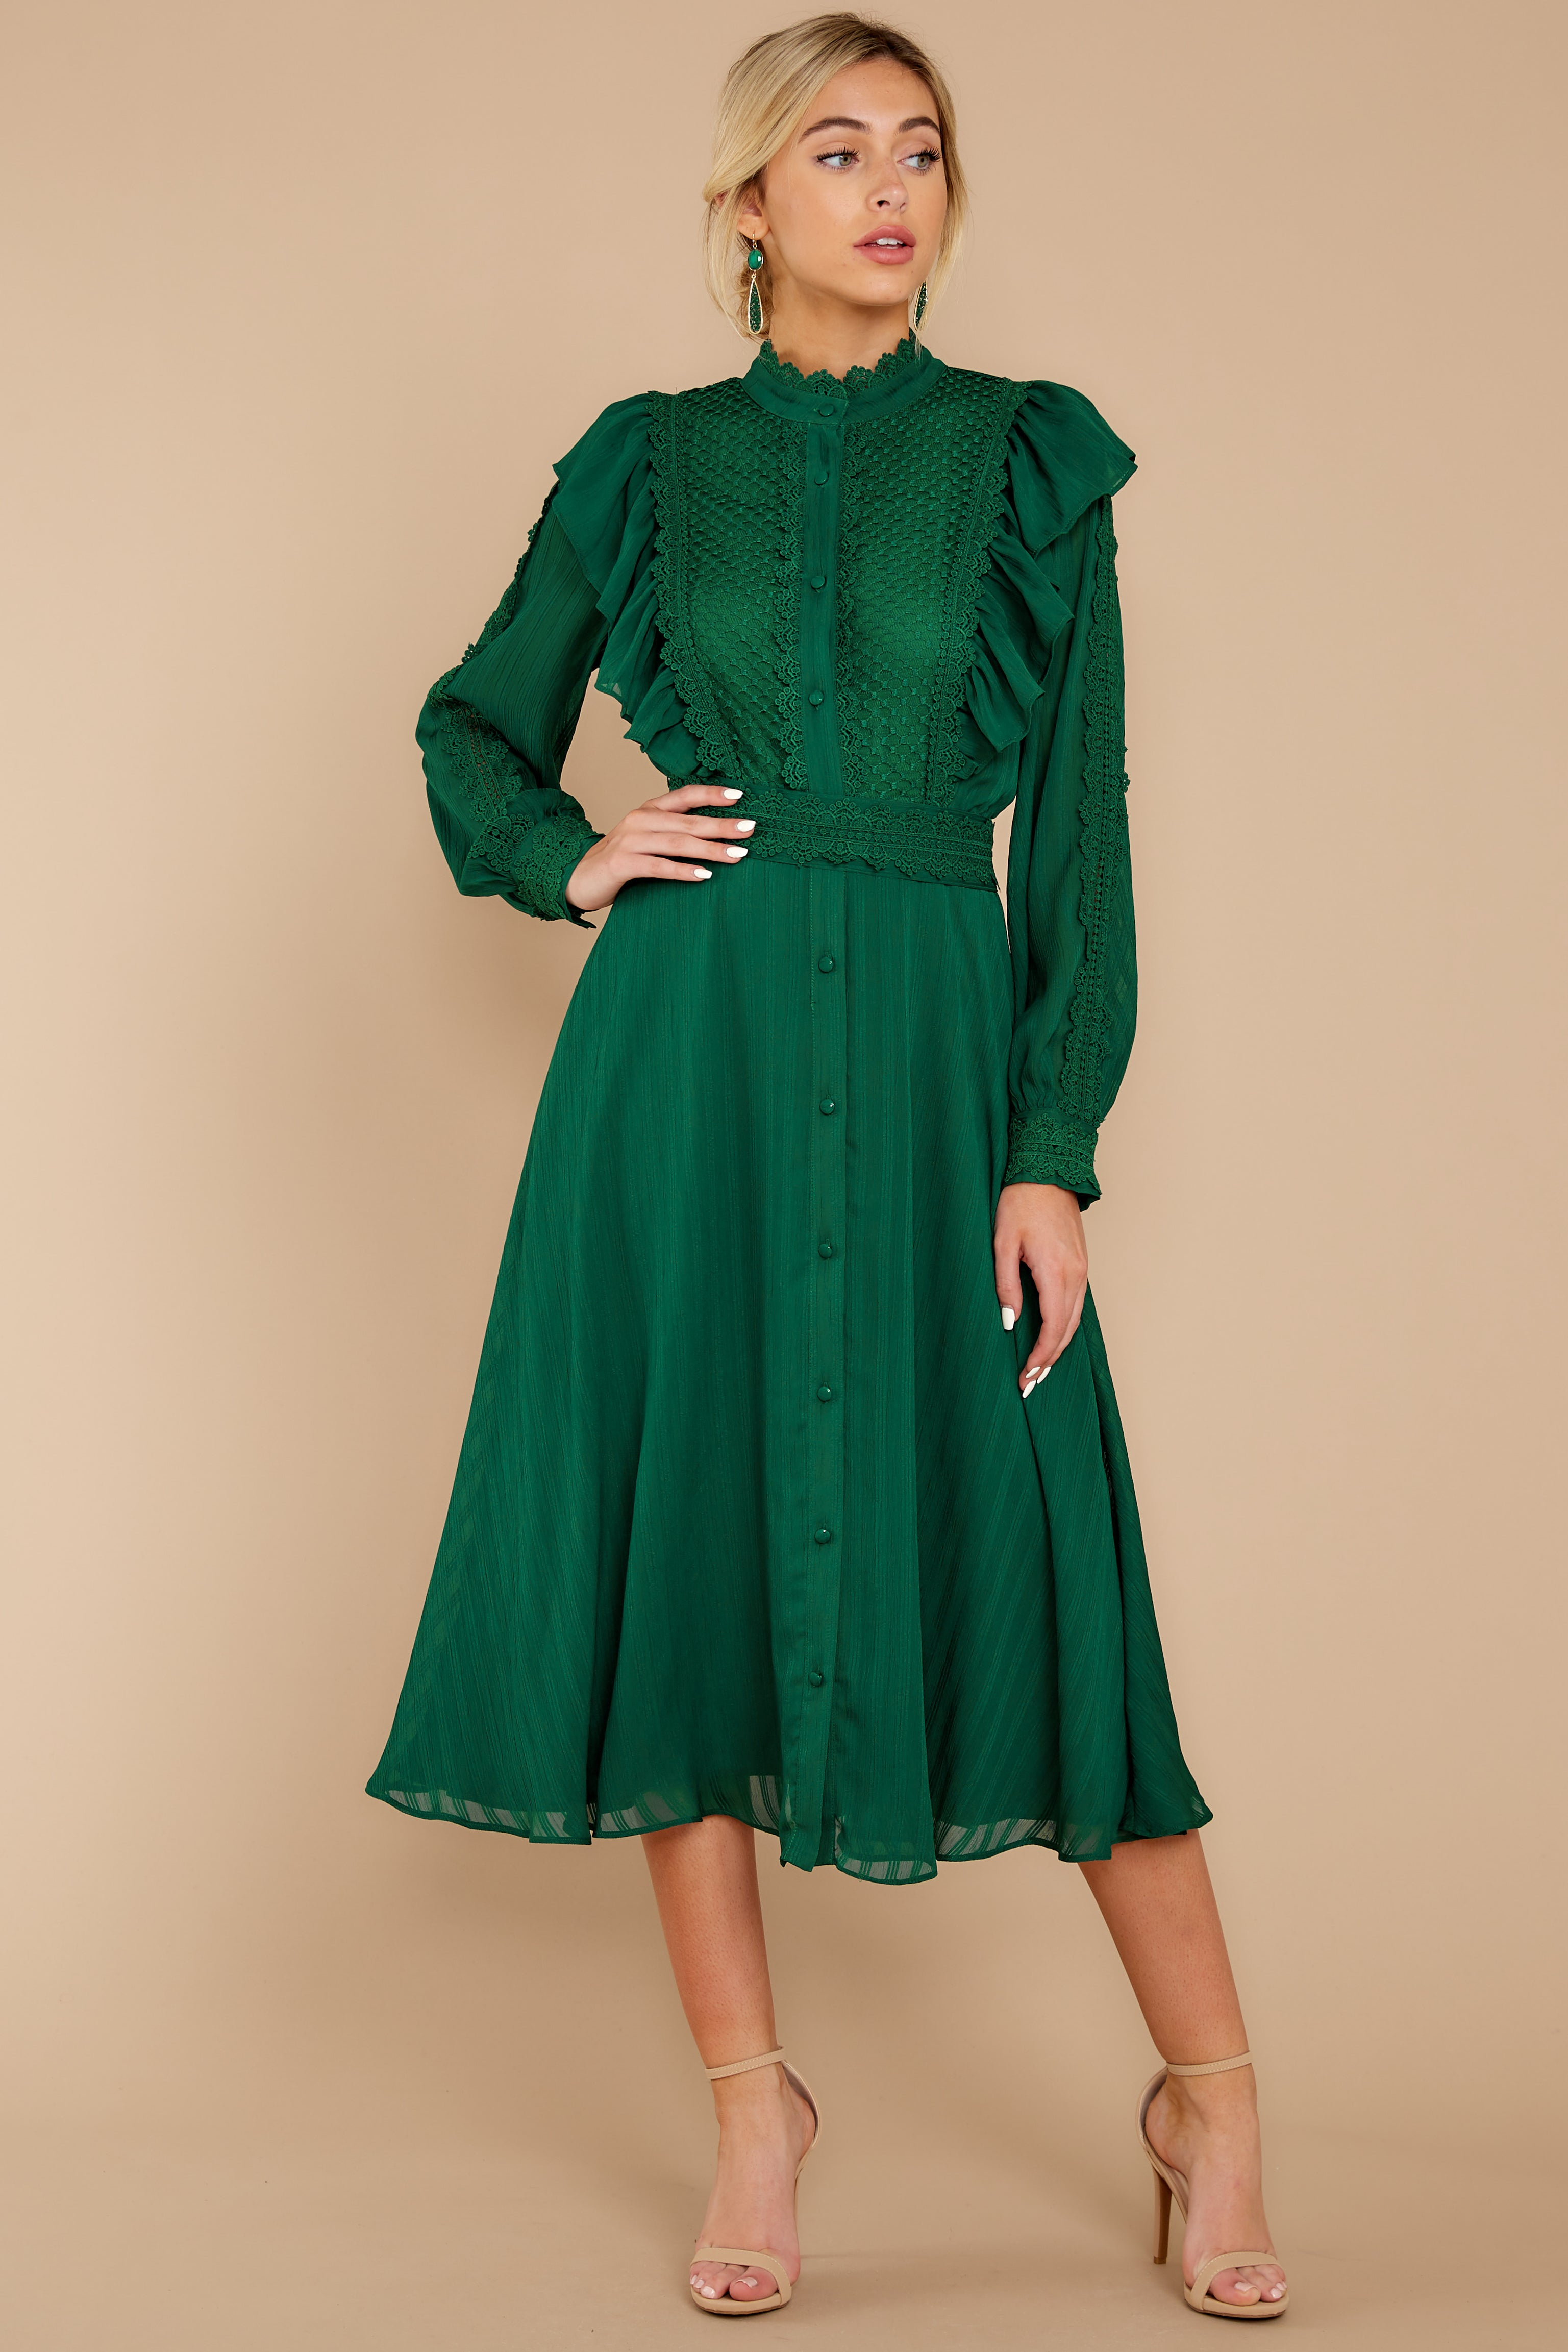 2 Not Without Love Green Midi Dress at reddress.com